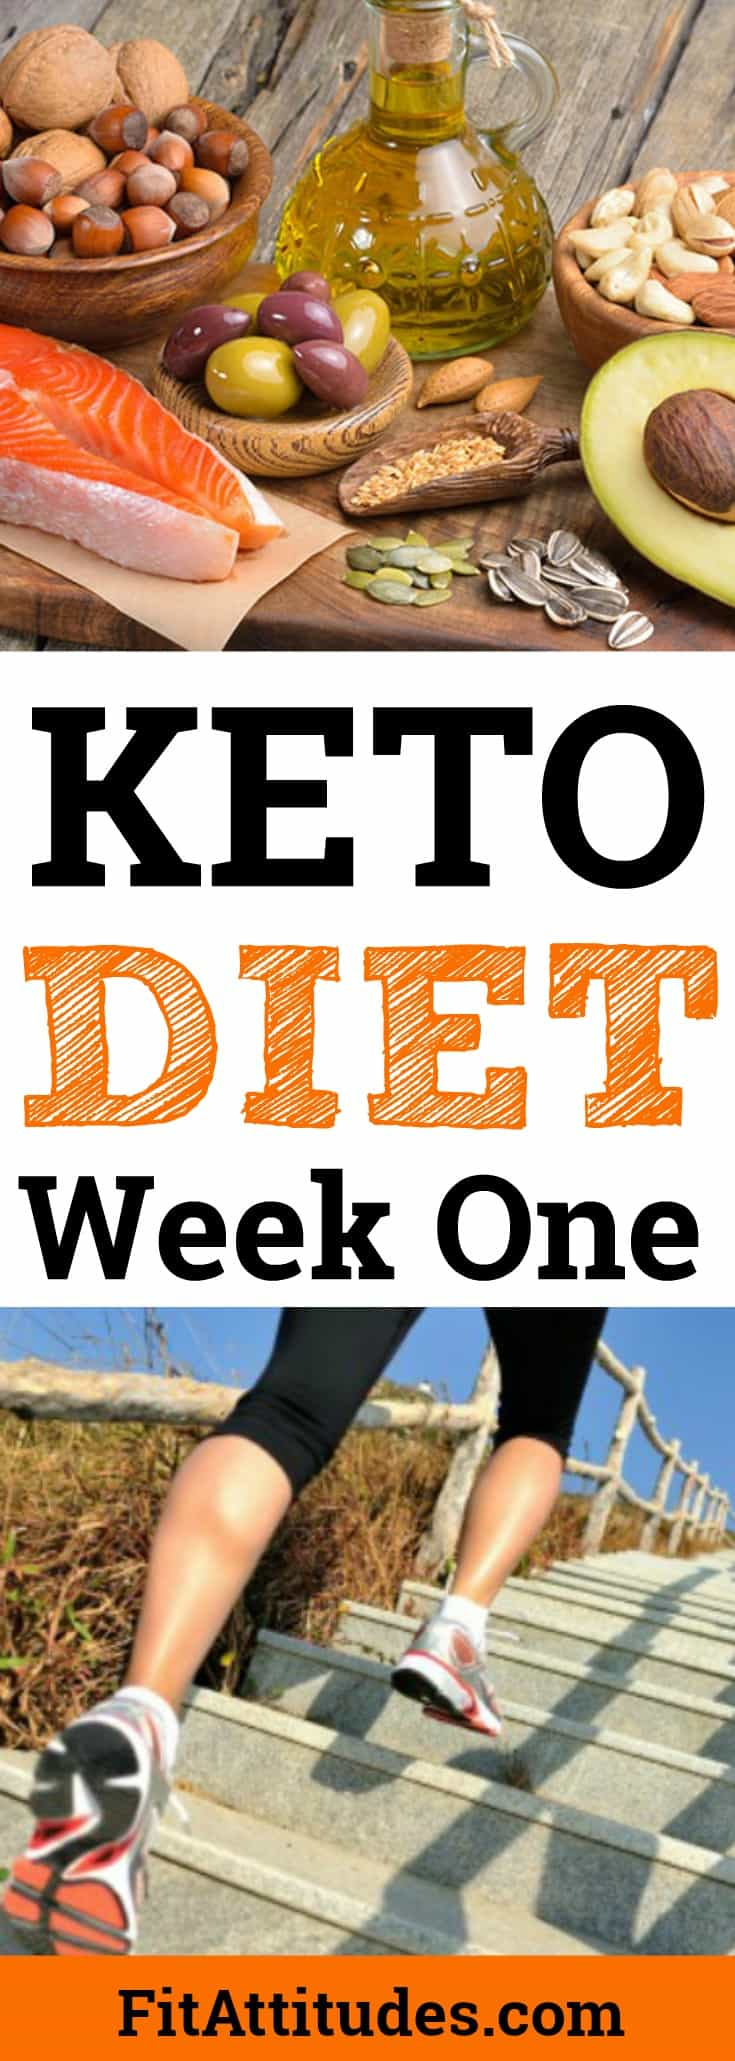 Find out how I lost 8 pound in the first week on the Keto diet.